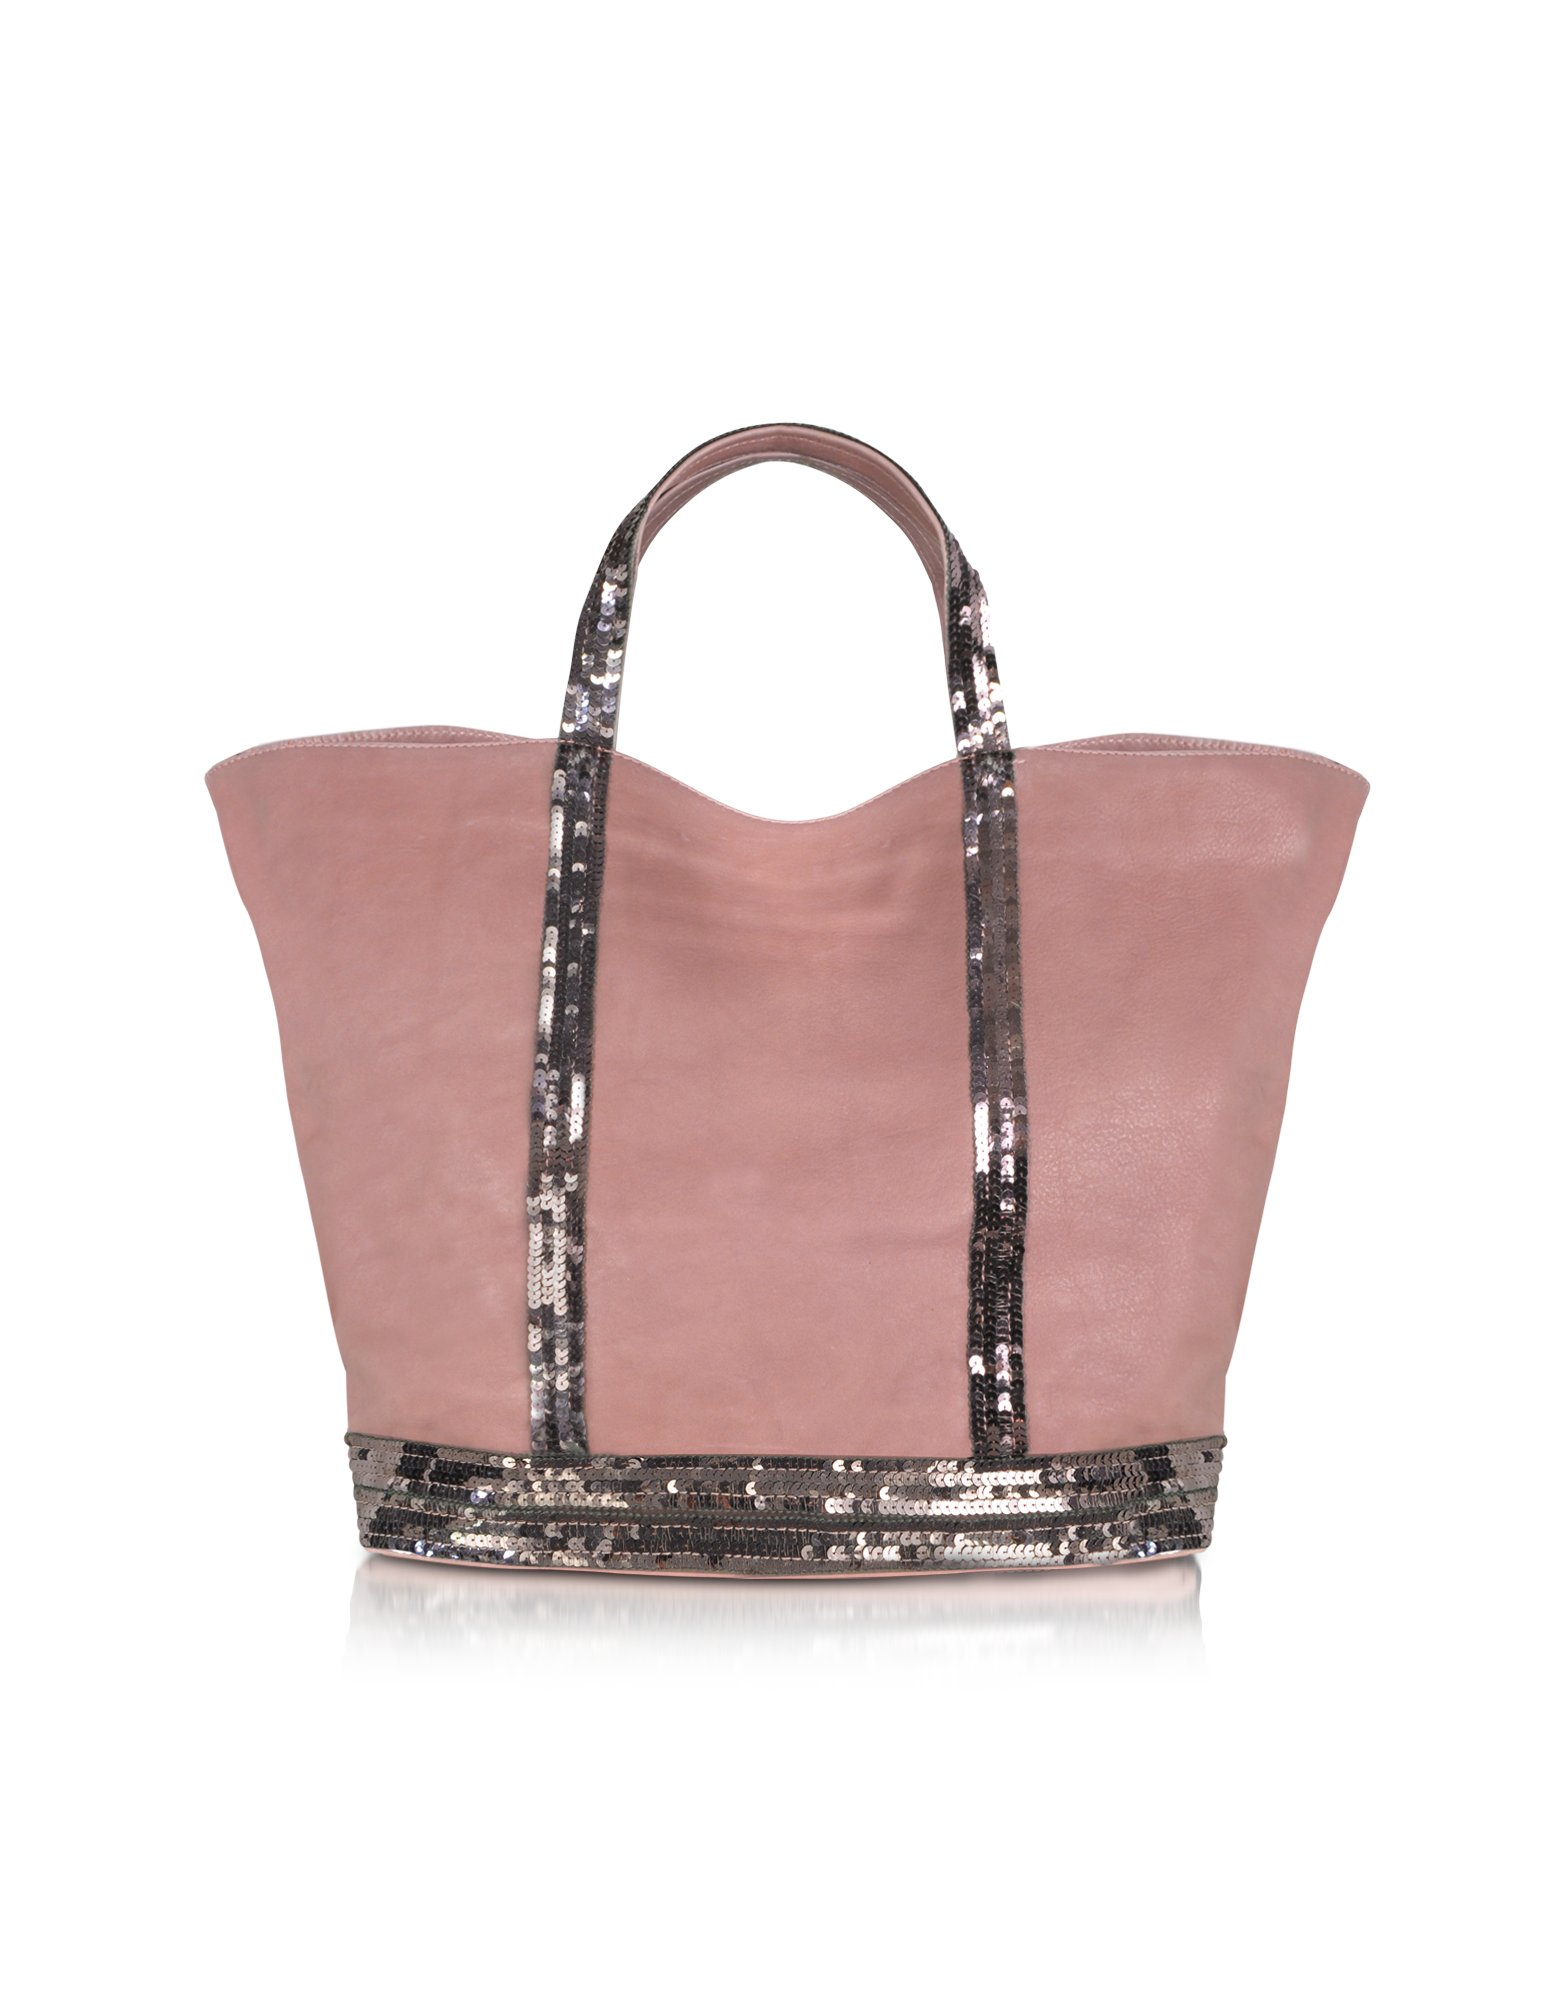 vanessa bruno le cabas large sequined leather tote in pink lyst. Black Bedroom Furniture Sets. Home Design Ideas